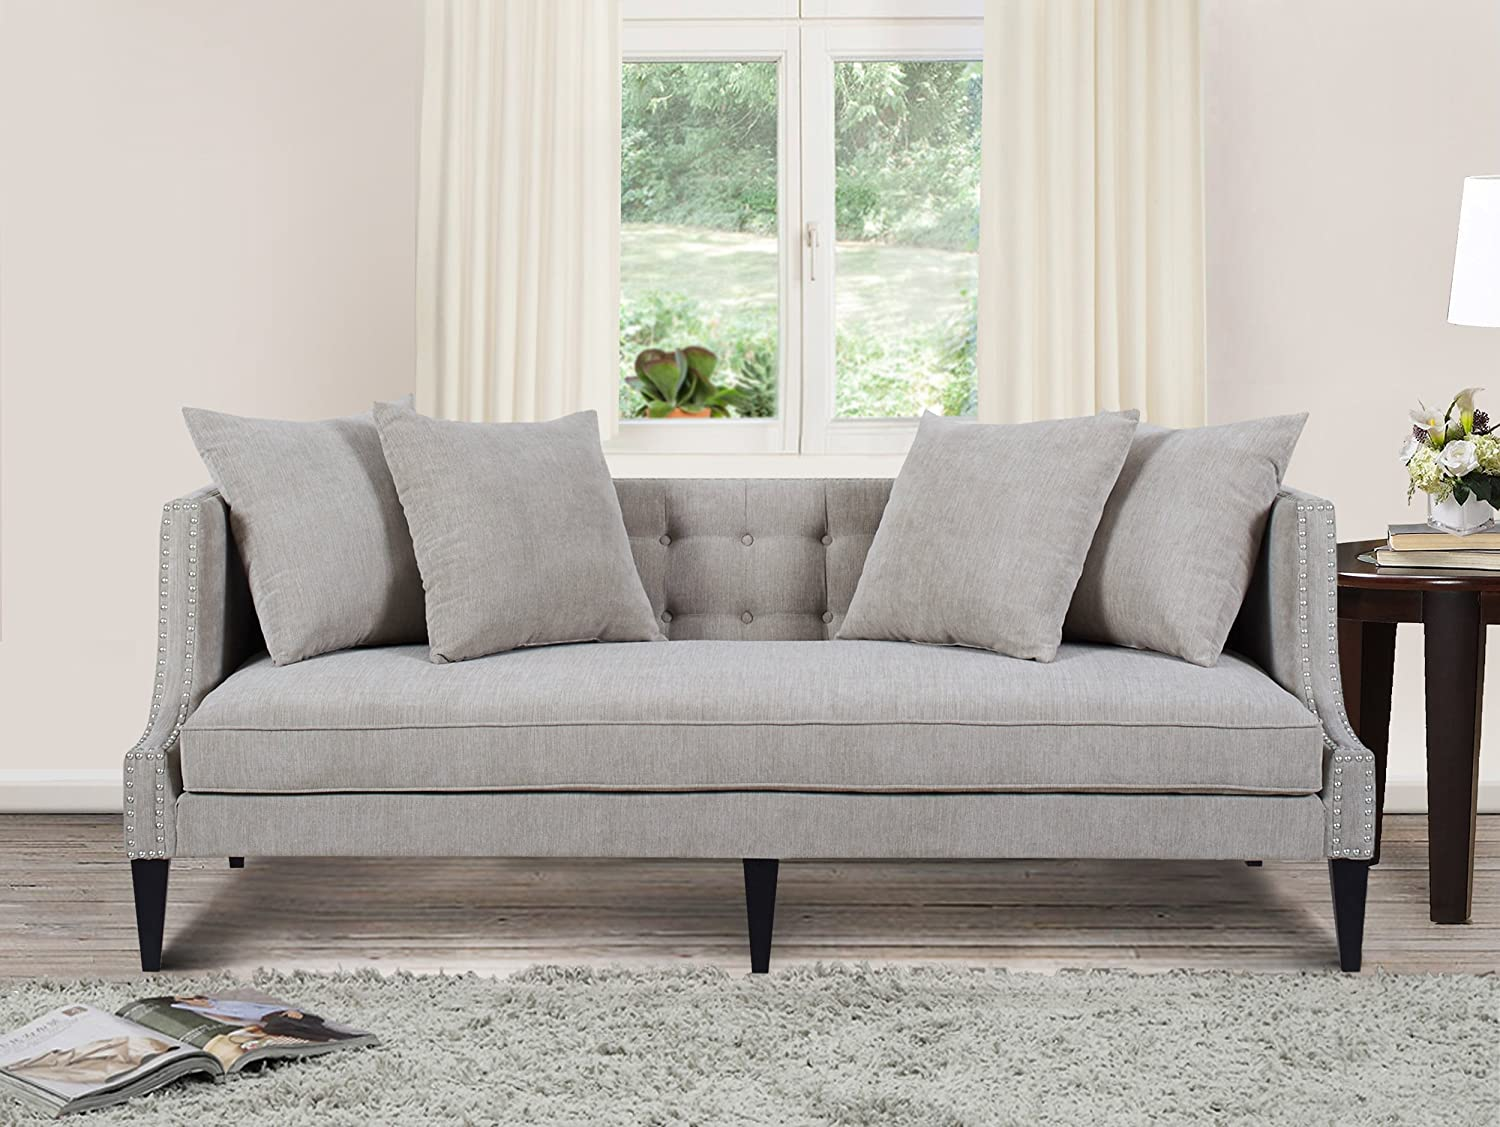 Amazon com jennifer taylor home caroline collection modern tuxedo style button tufted upholstered living room sofa with nailhead trim silver gray kitchen